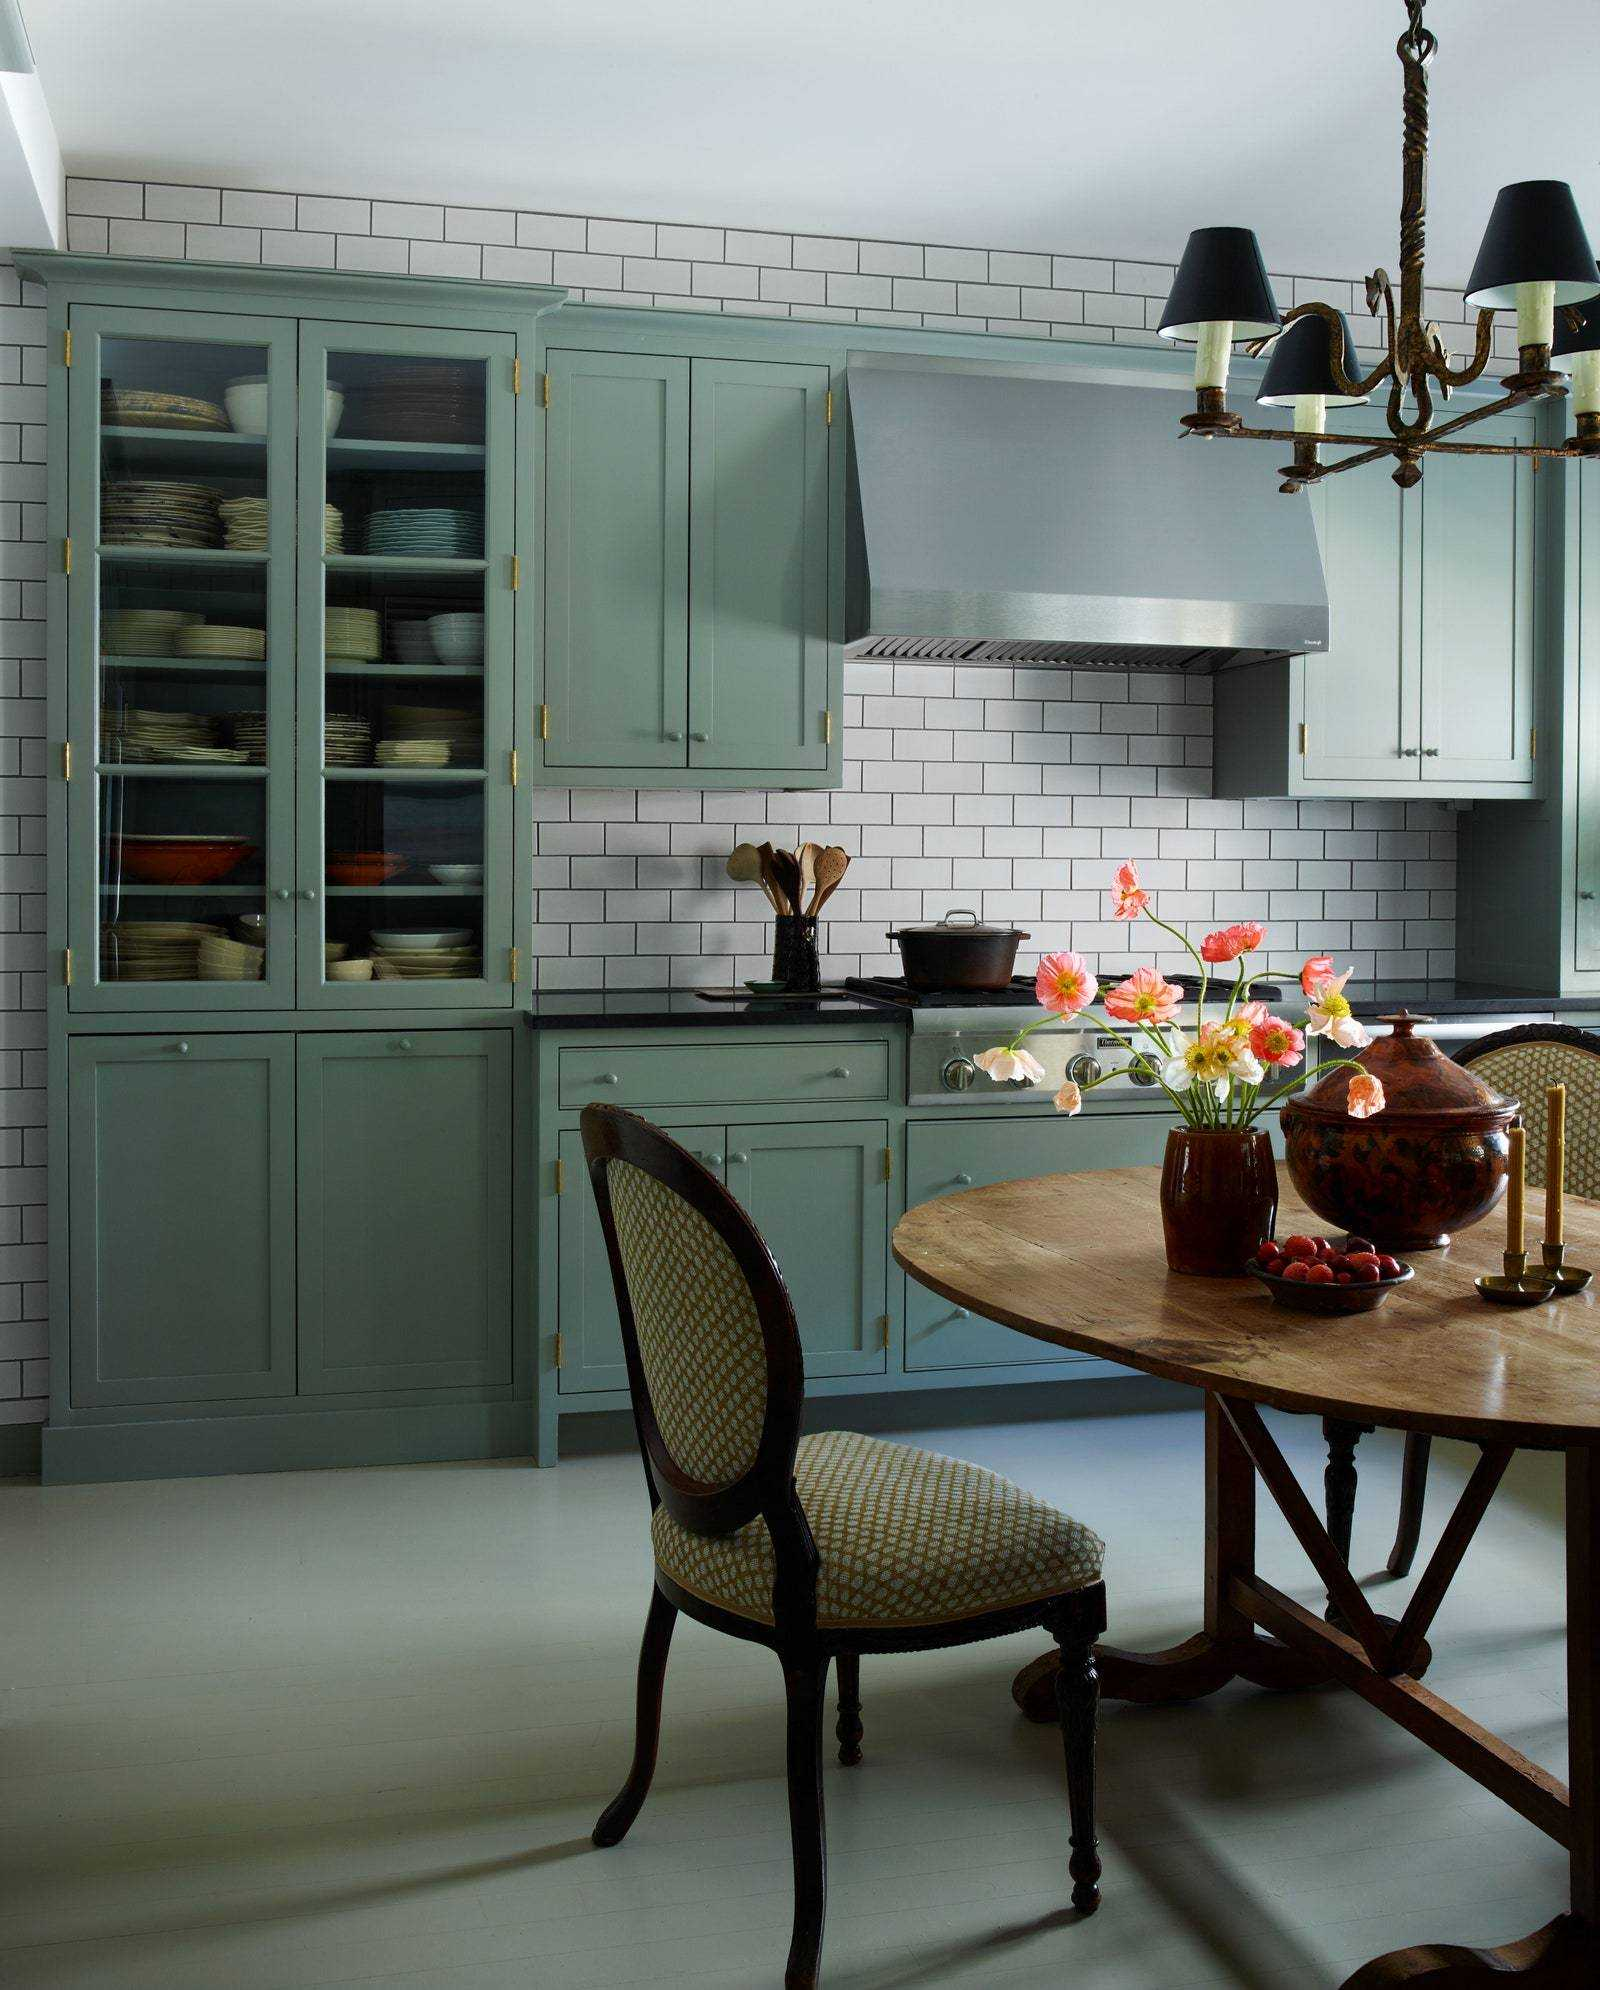 The shaker-inspired kitchen cabinets have knobs that Daniels says disappear so you can read the room what it is ...